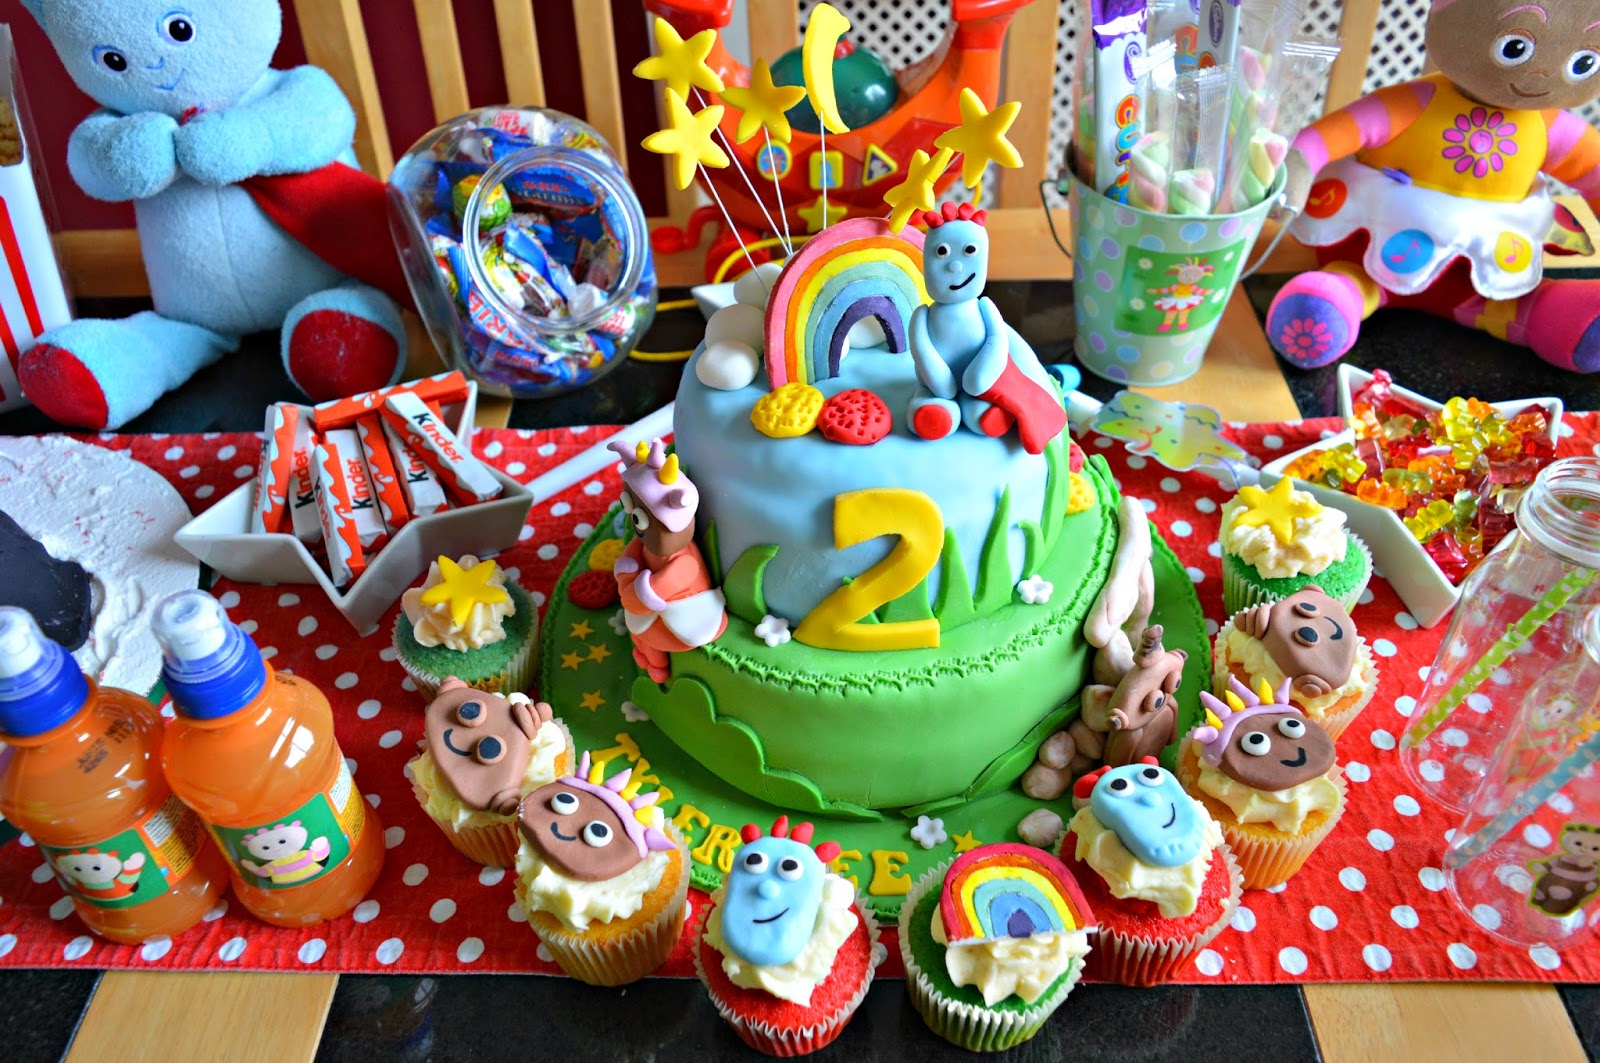 tyler lee s nd birthday in the night garden themed tea party i wanted everything to be as colourful as it could possibly be i think a child s birthday party should always be cheerful so i picked sweets and treats